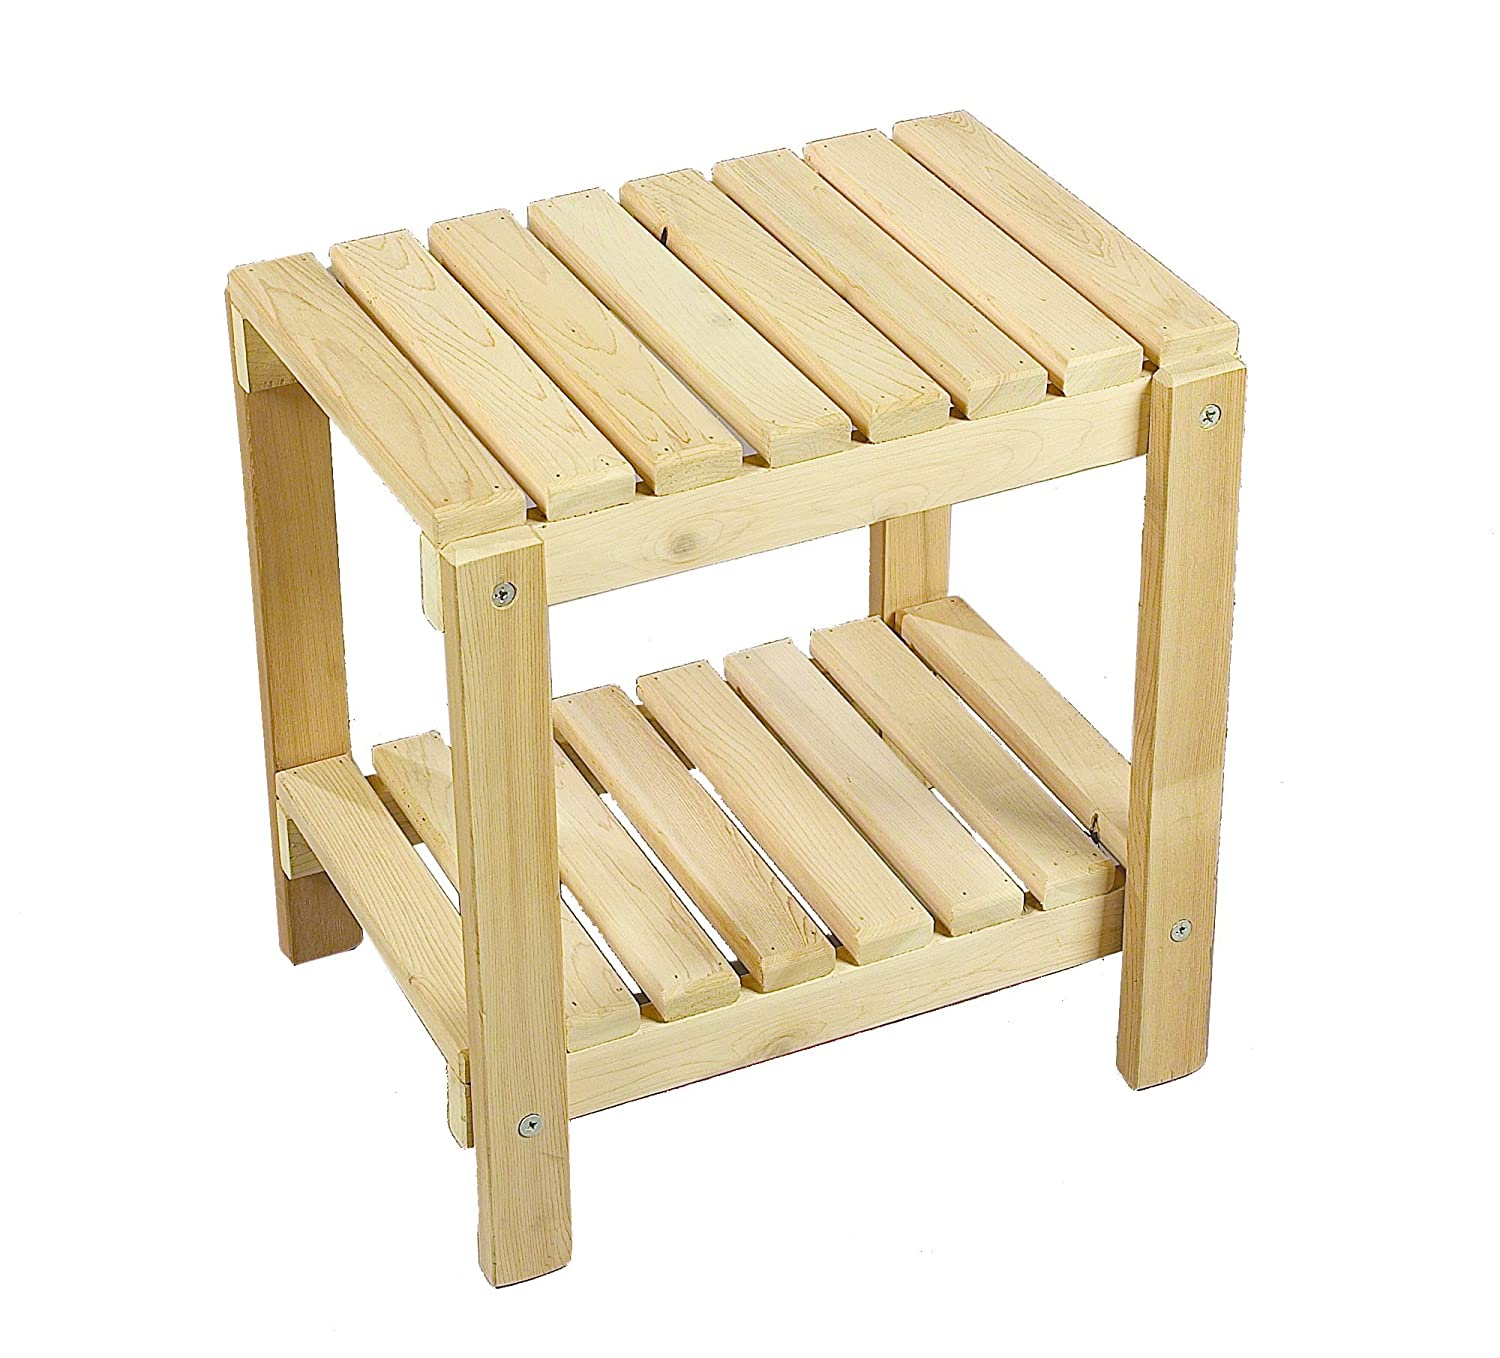 ... patio side table plans patio side table plans patio side table plans